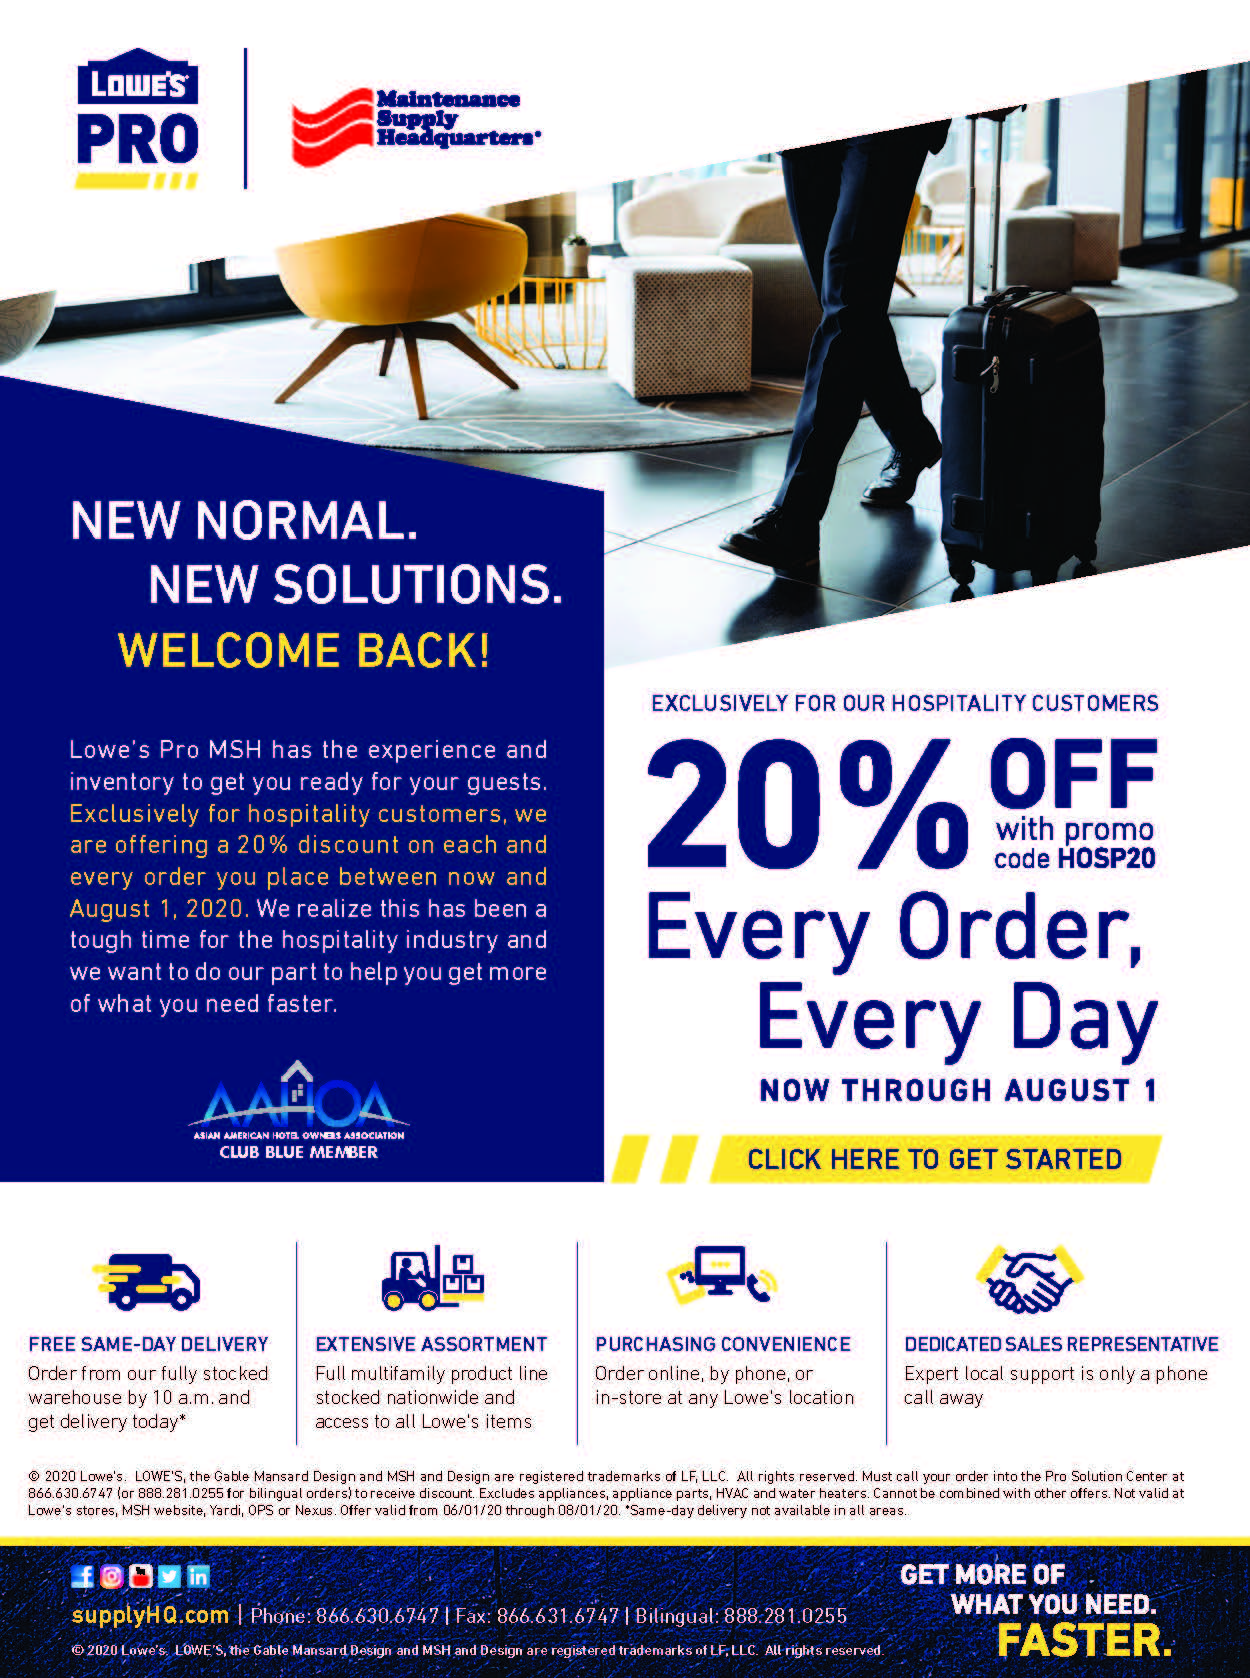 Lowes Hospitality Promotion for AAHOA